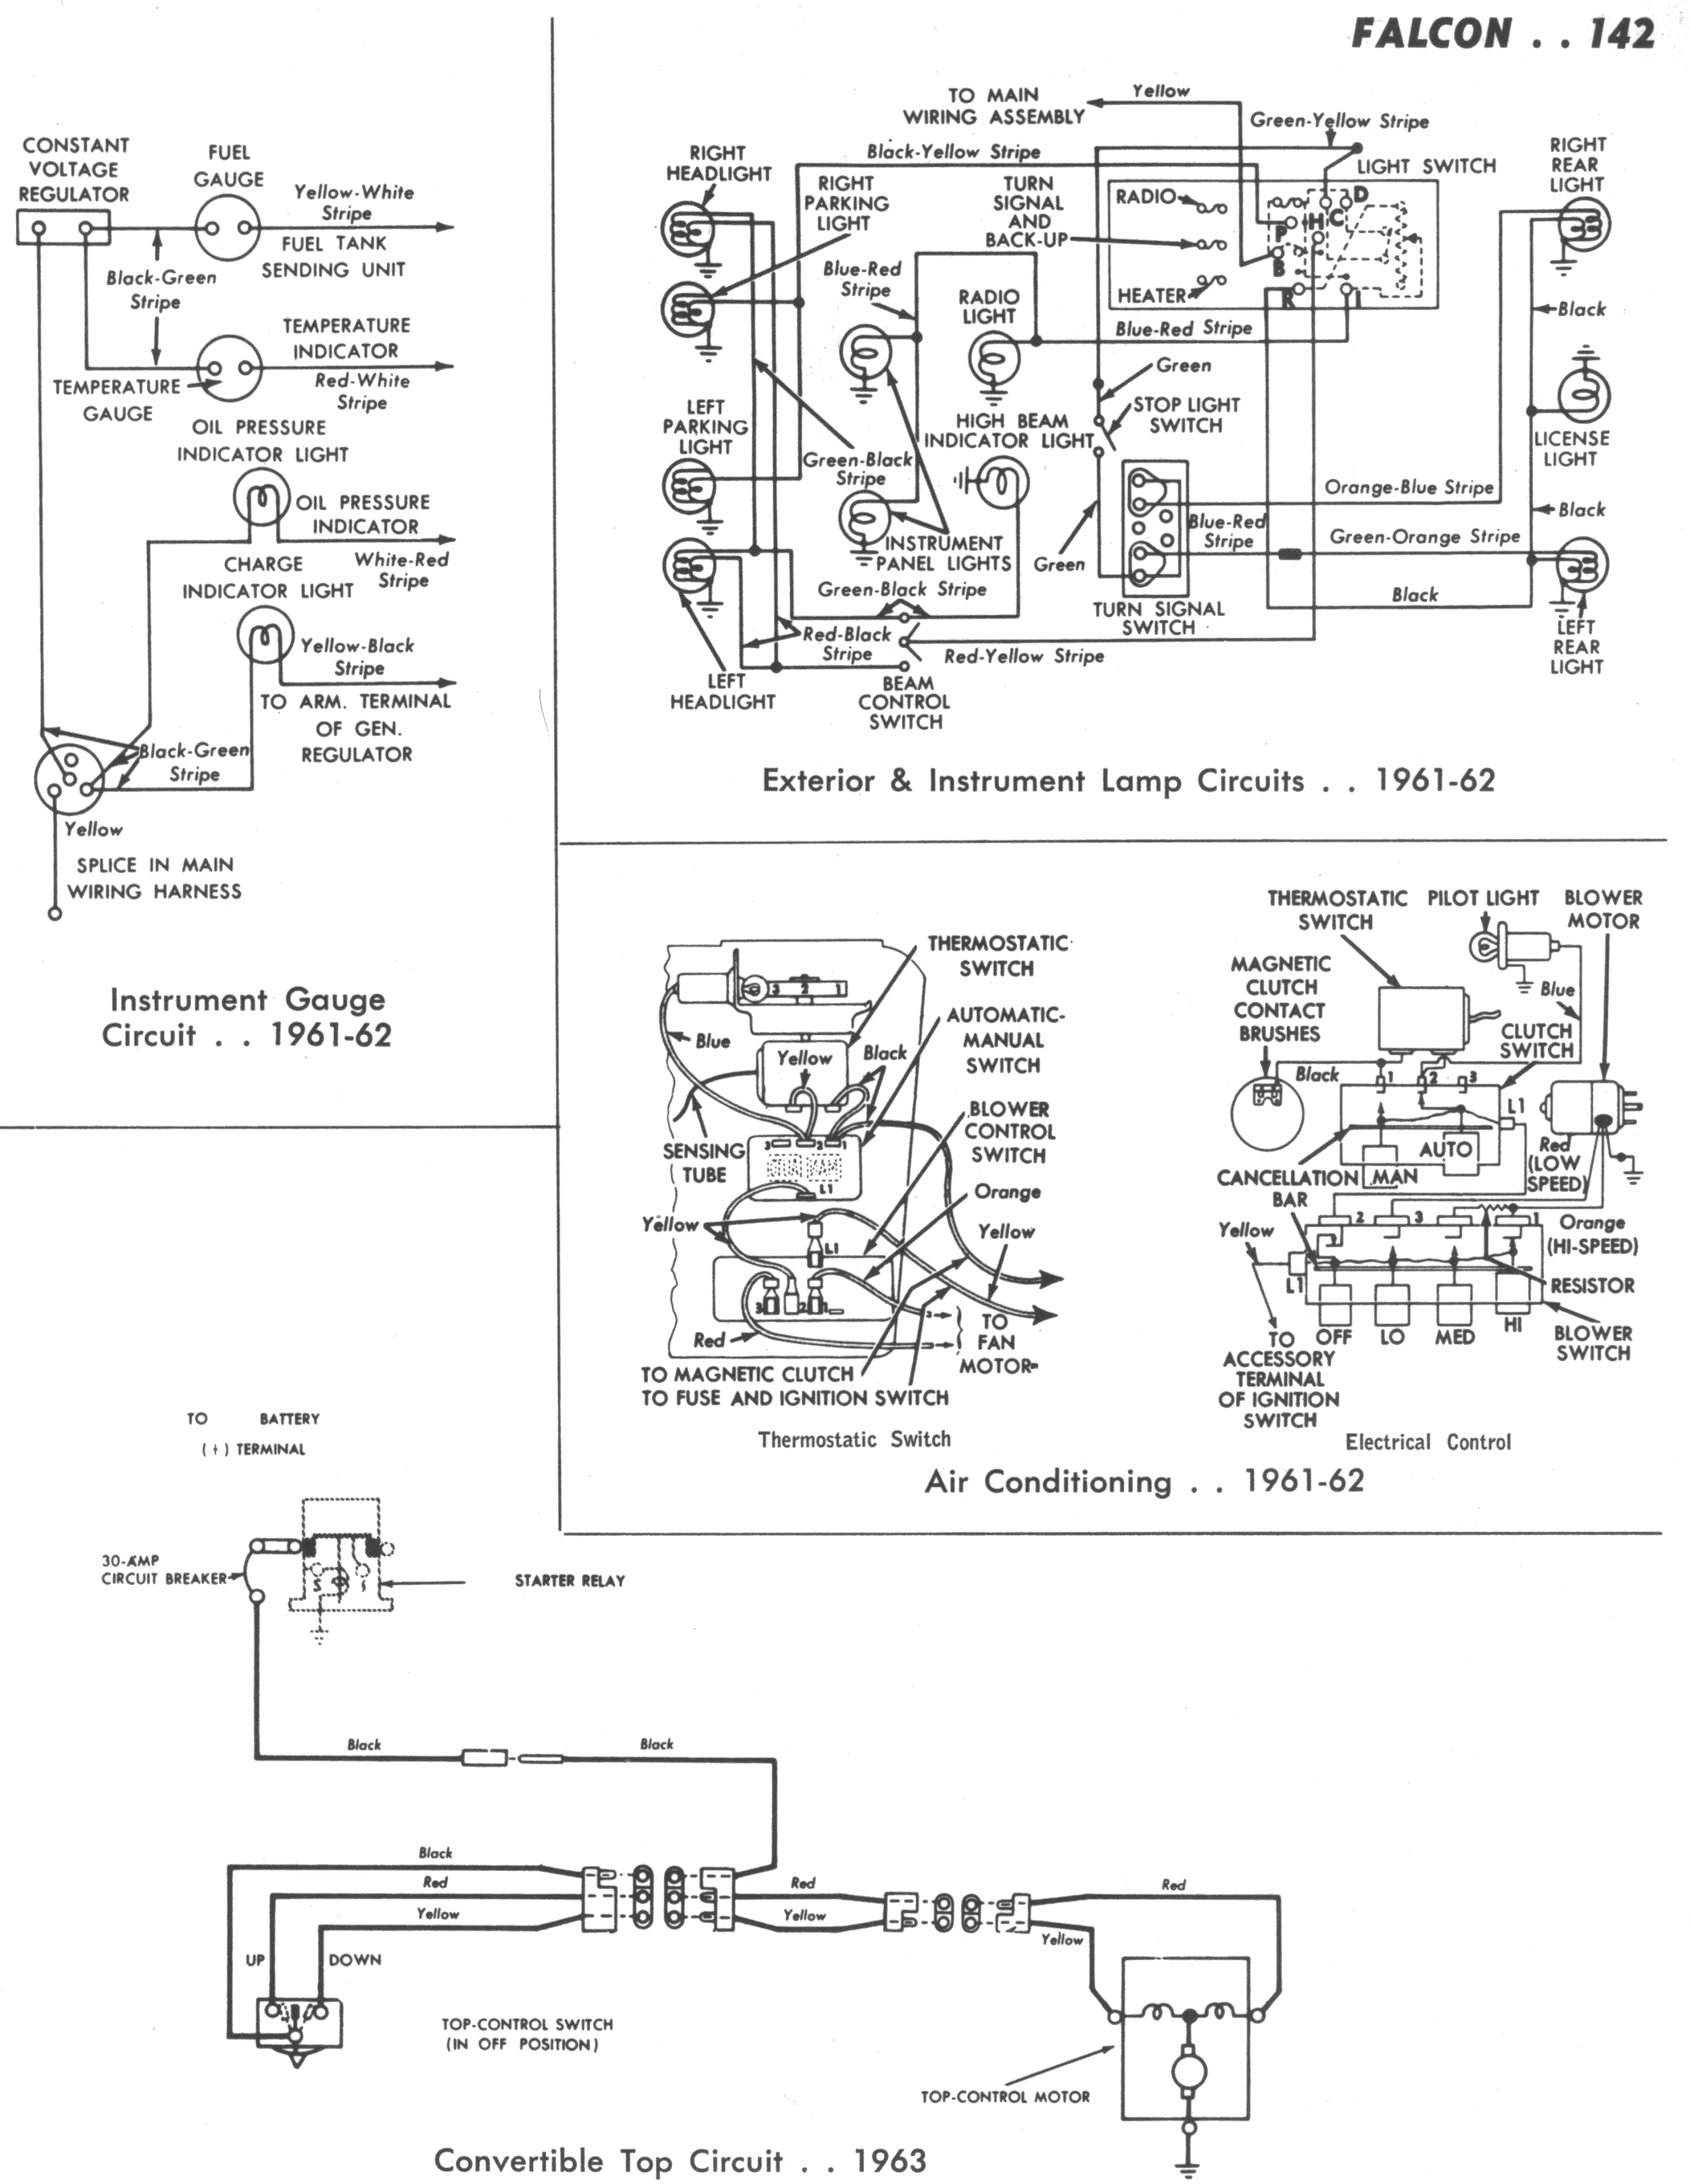 hight resolution of 1964 ford falcon wiring wiring diagramsfalcon wiring diagrams 1964 ford falcon radio wiring 1964 ford falcon